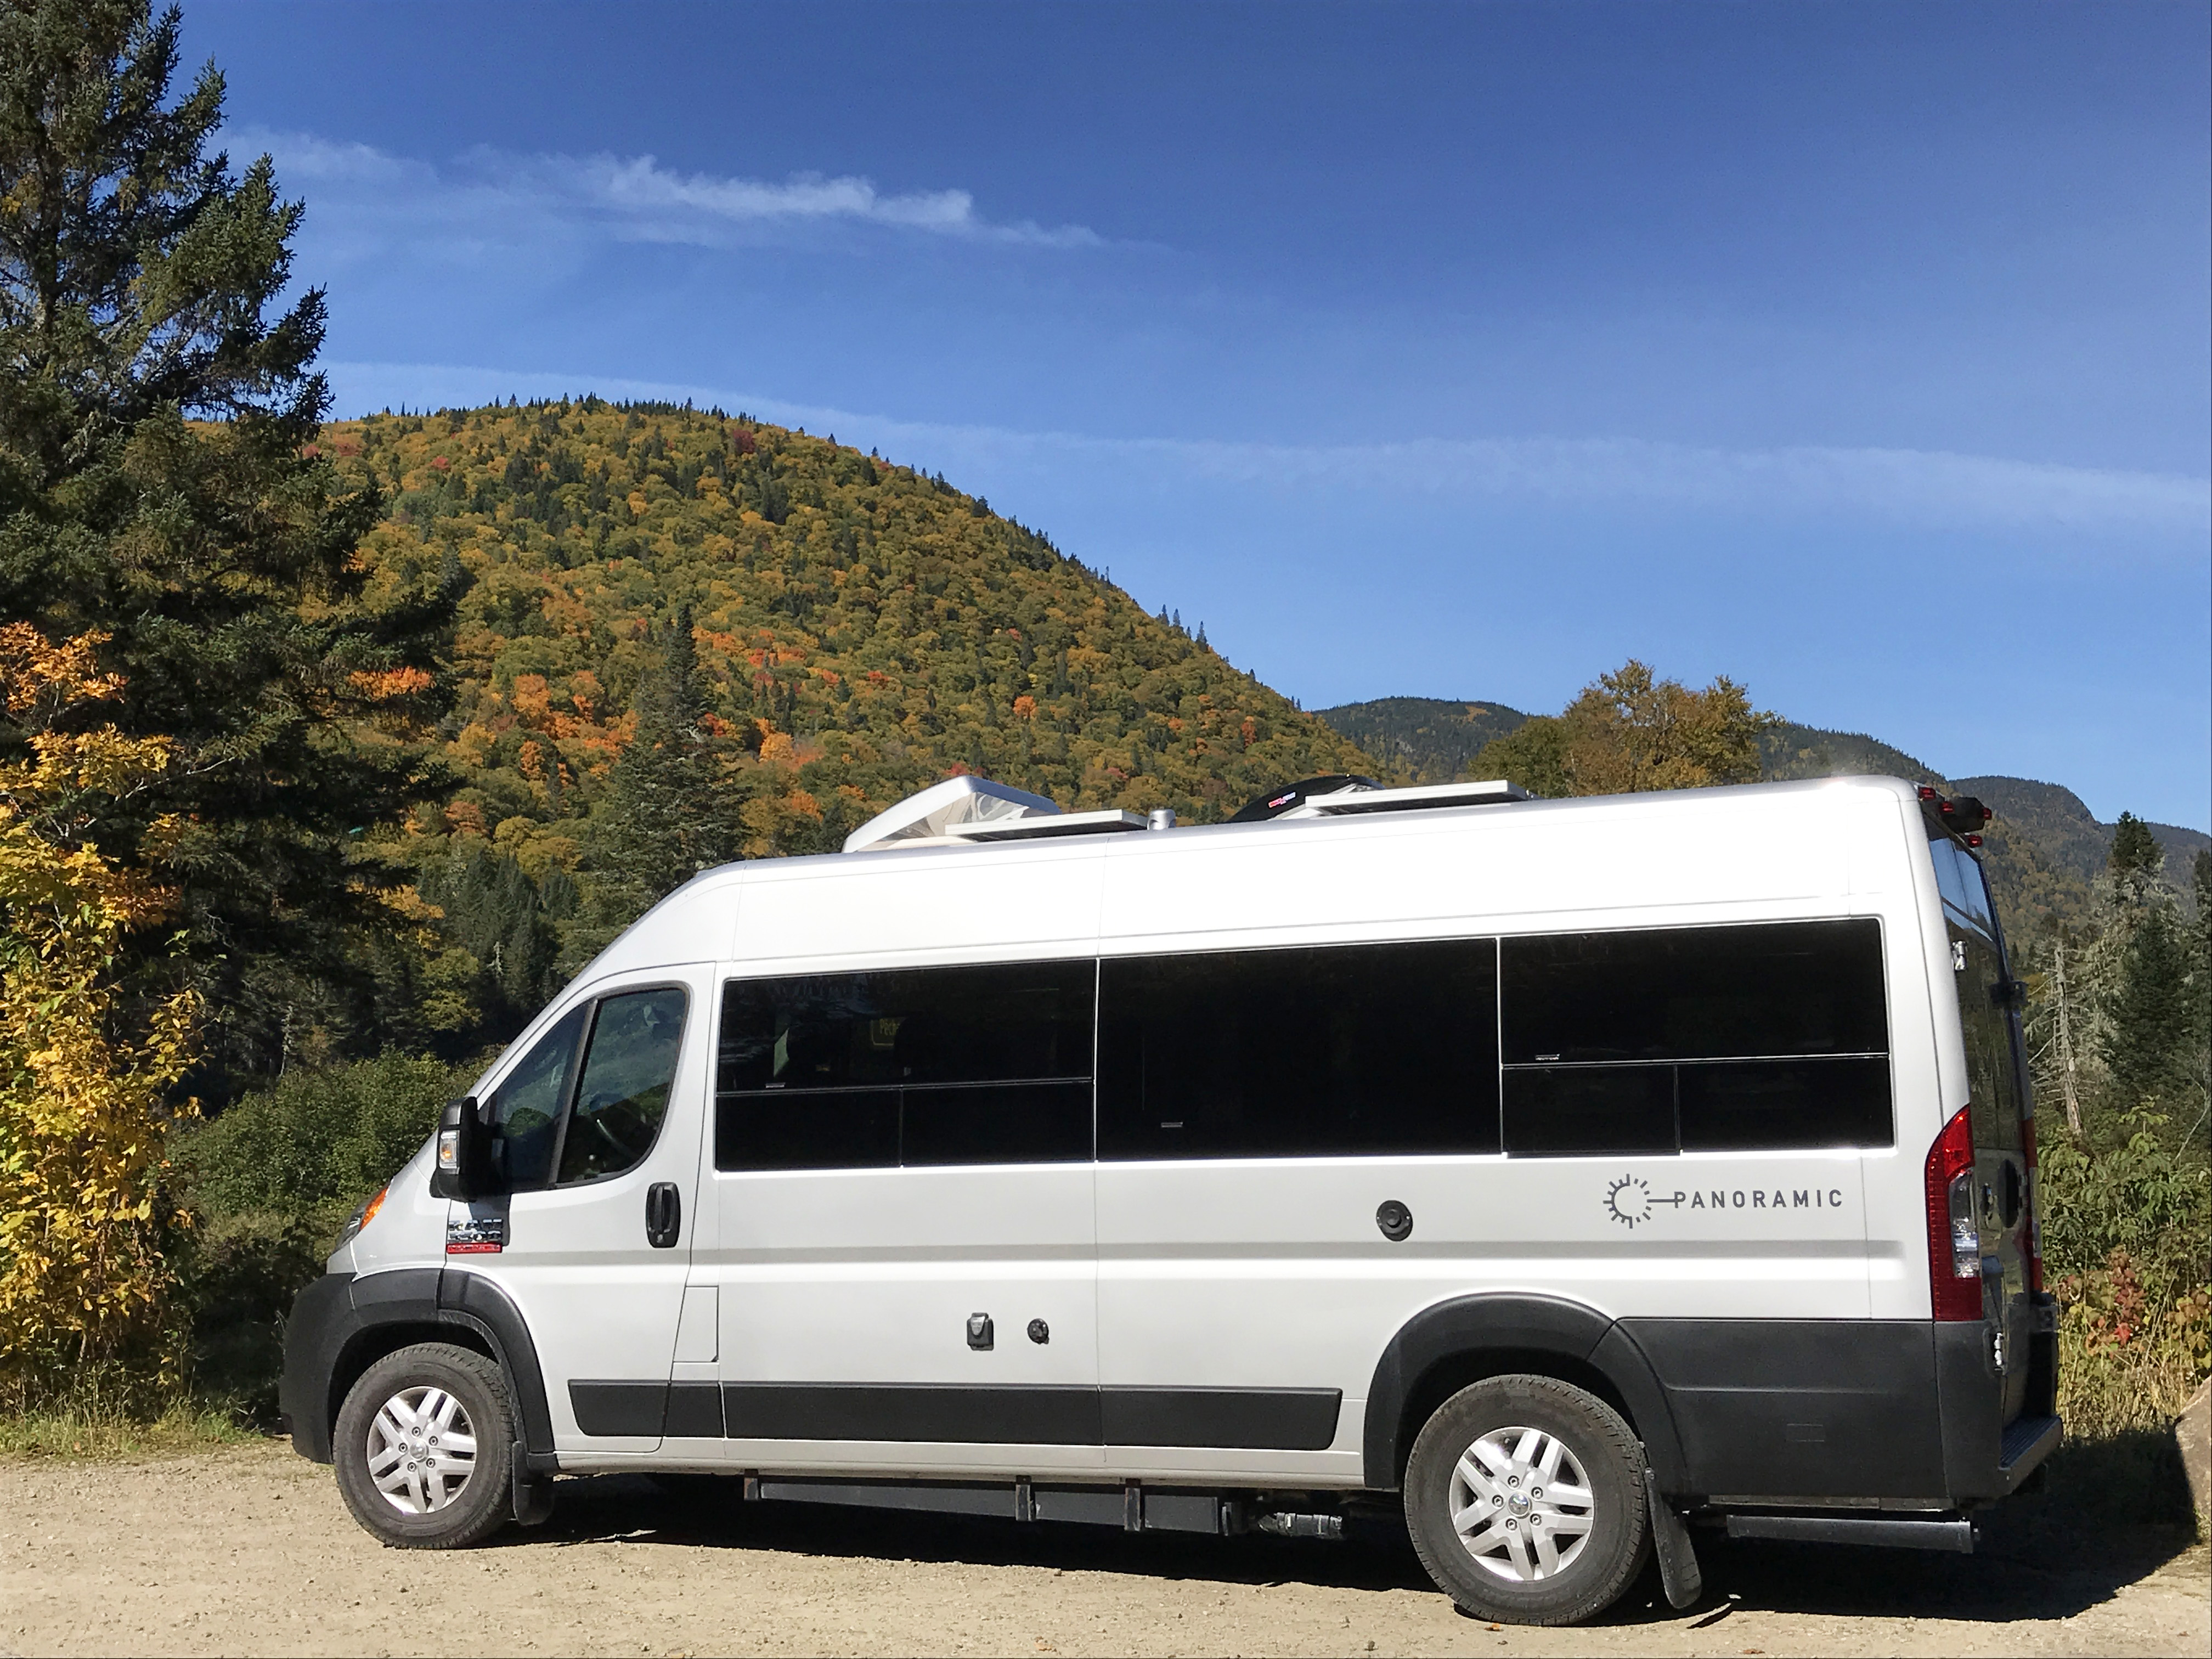 Panoramic RV - Owners - JV - 5